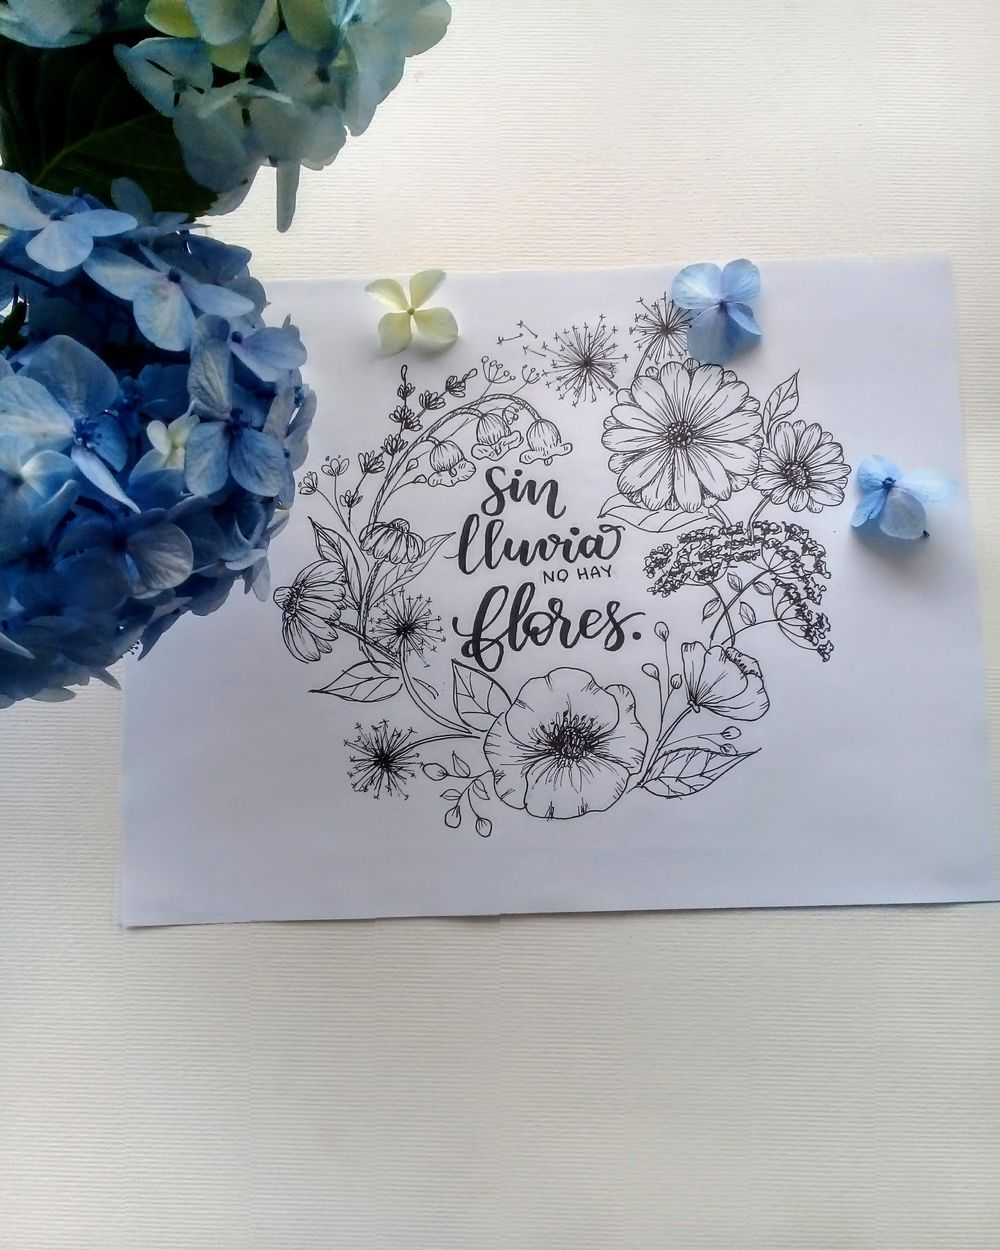 inked Wild Flowers - image 3 - student project